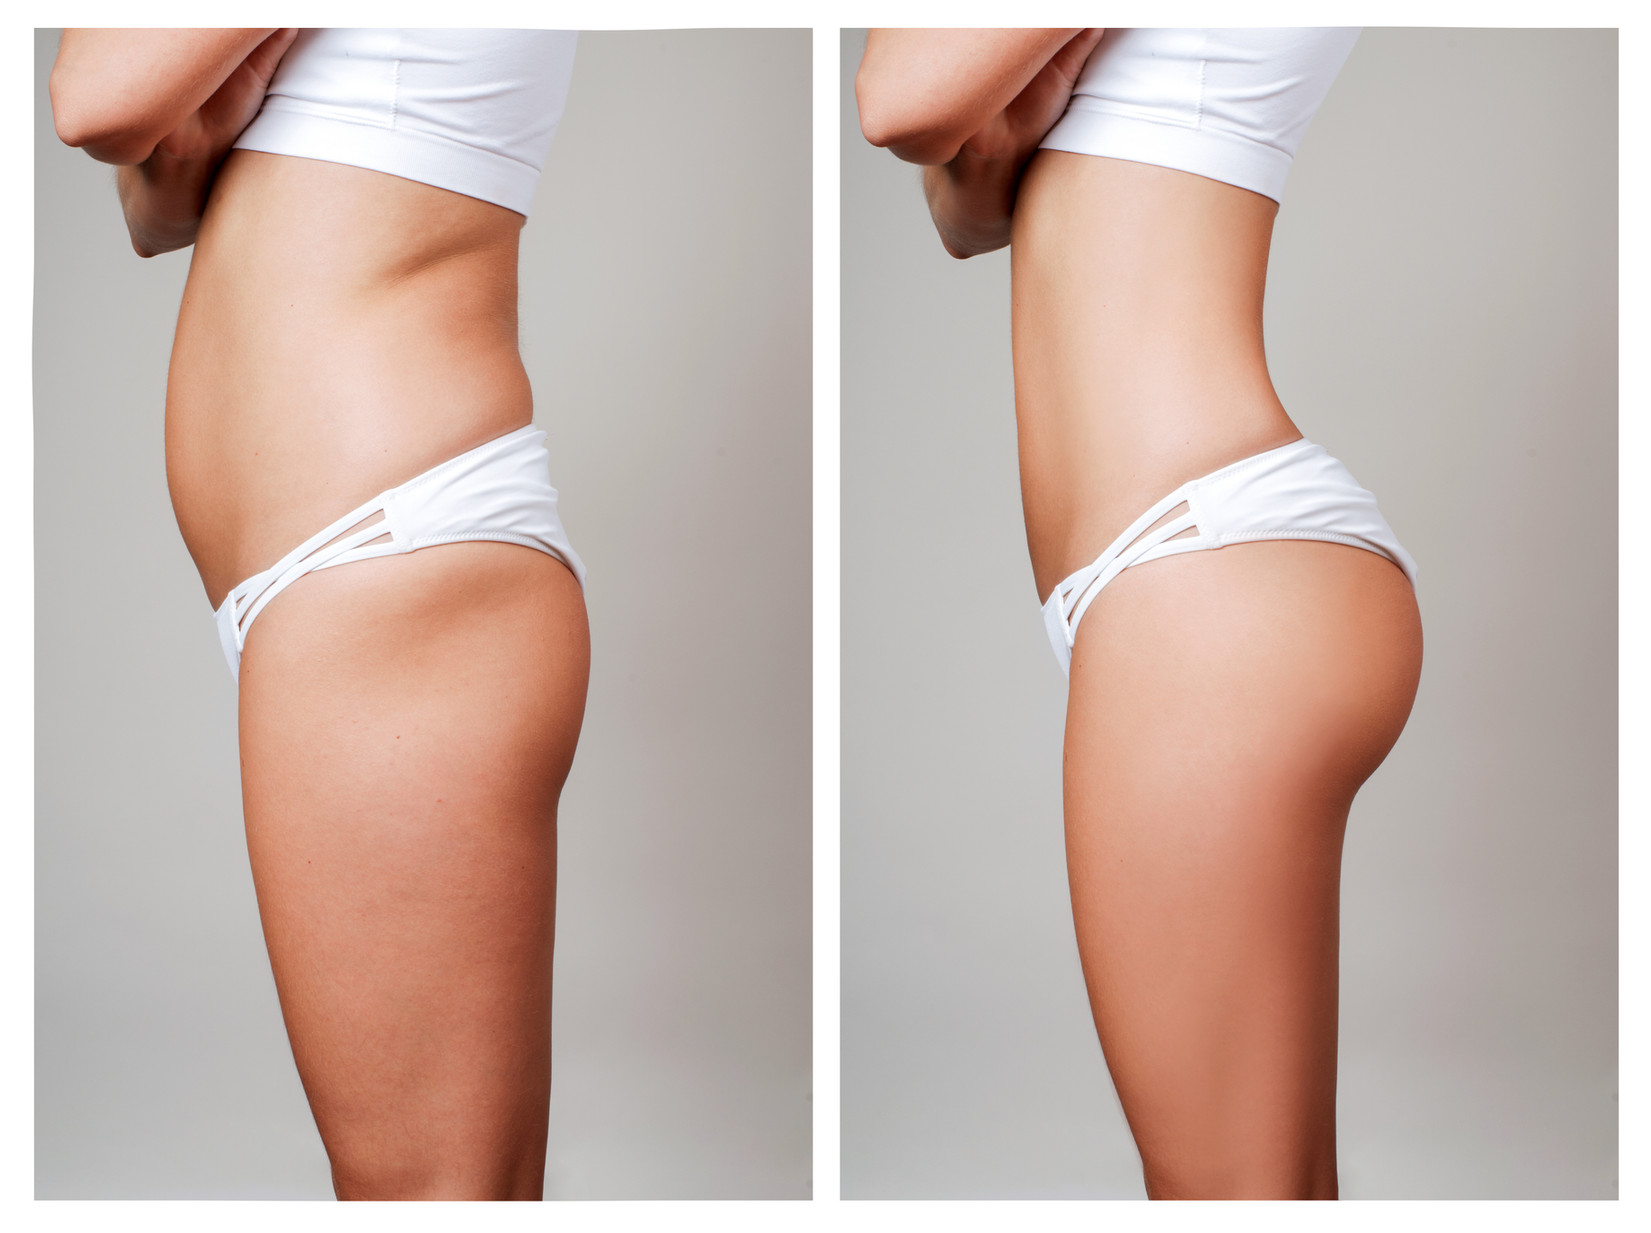 Female body before and after liposuction